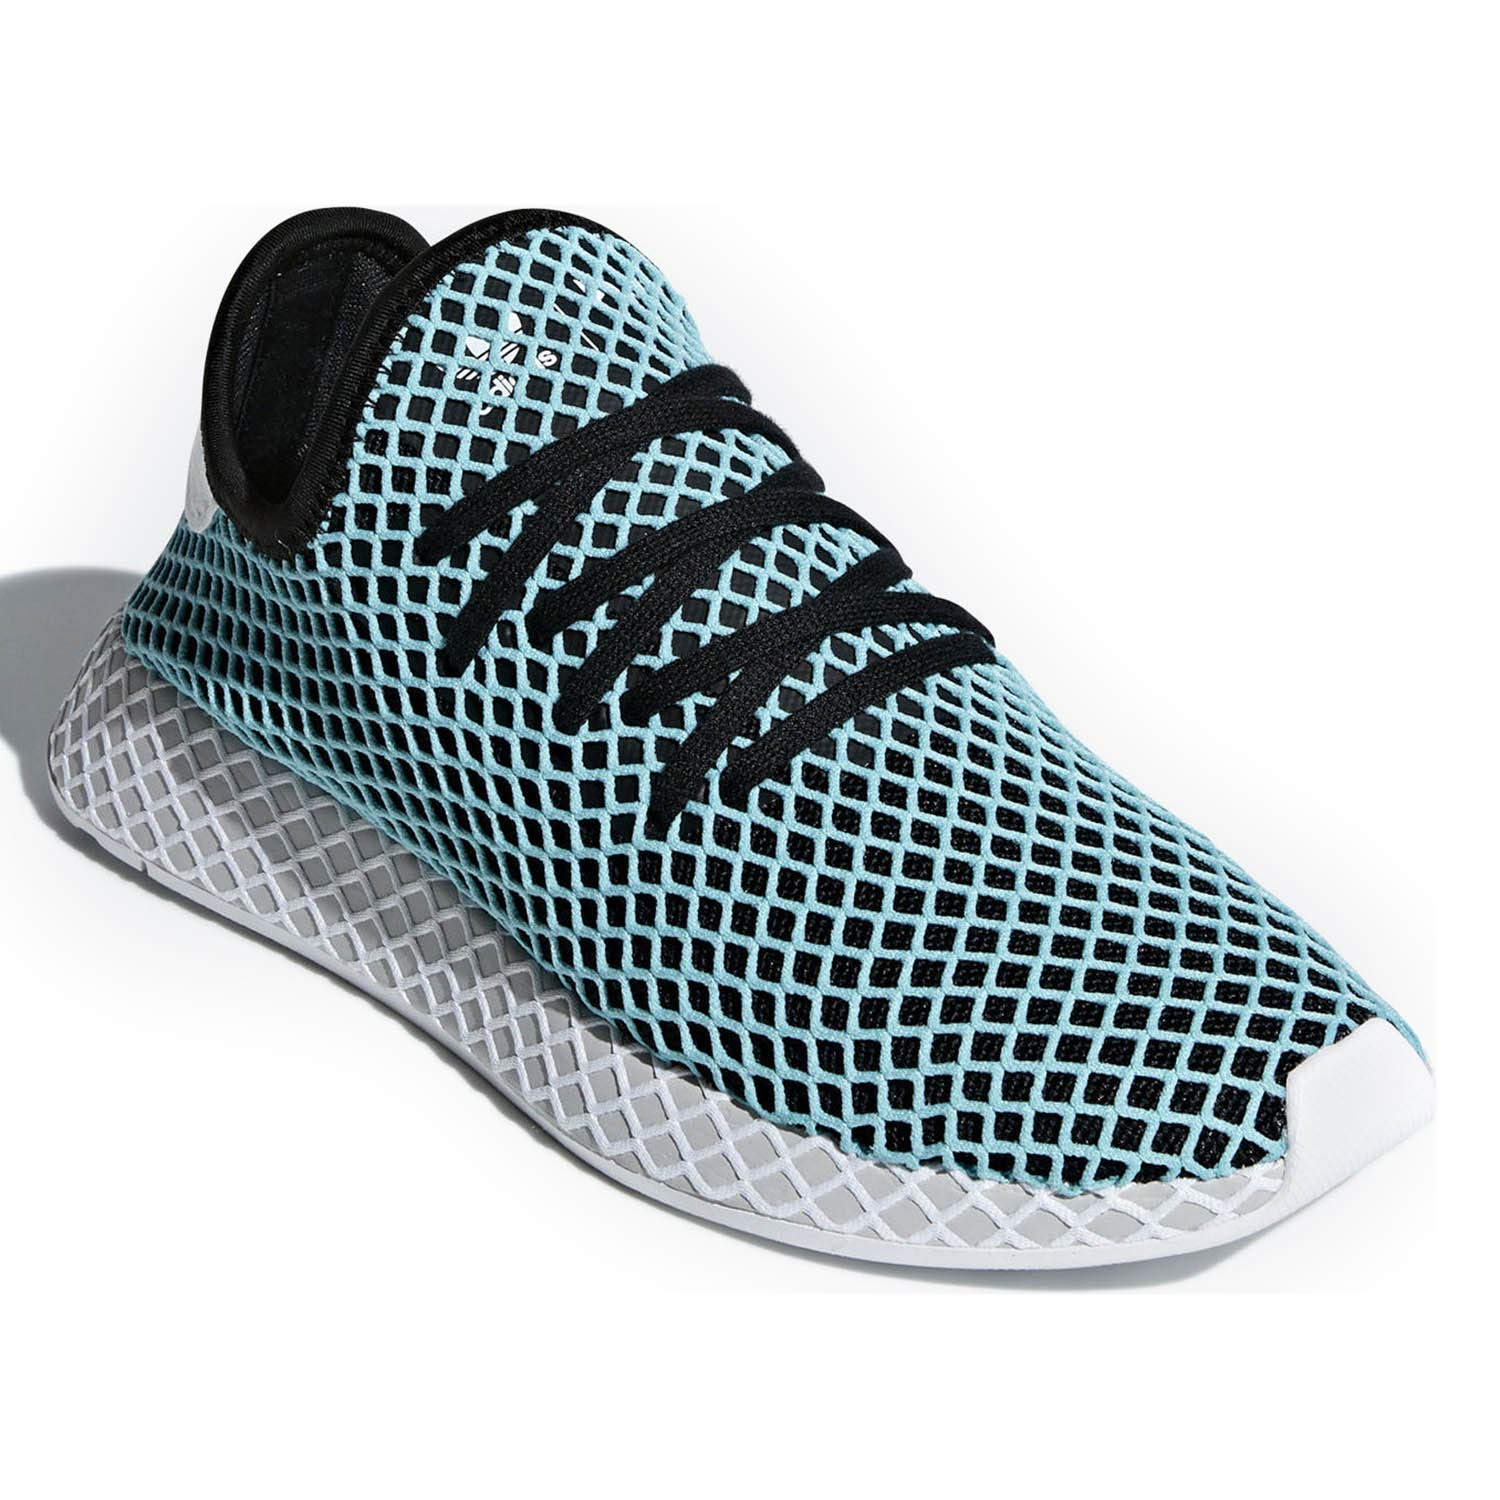 finest selection b0d1b 1fedb Amazon.com  adidas Mens Deerupt Runner Casual Shoes  Shoes